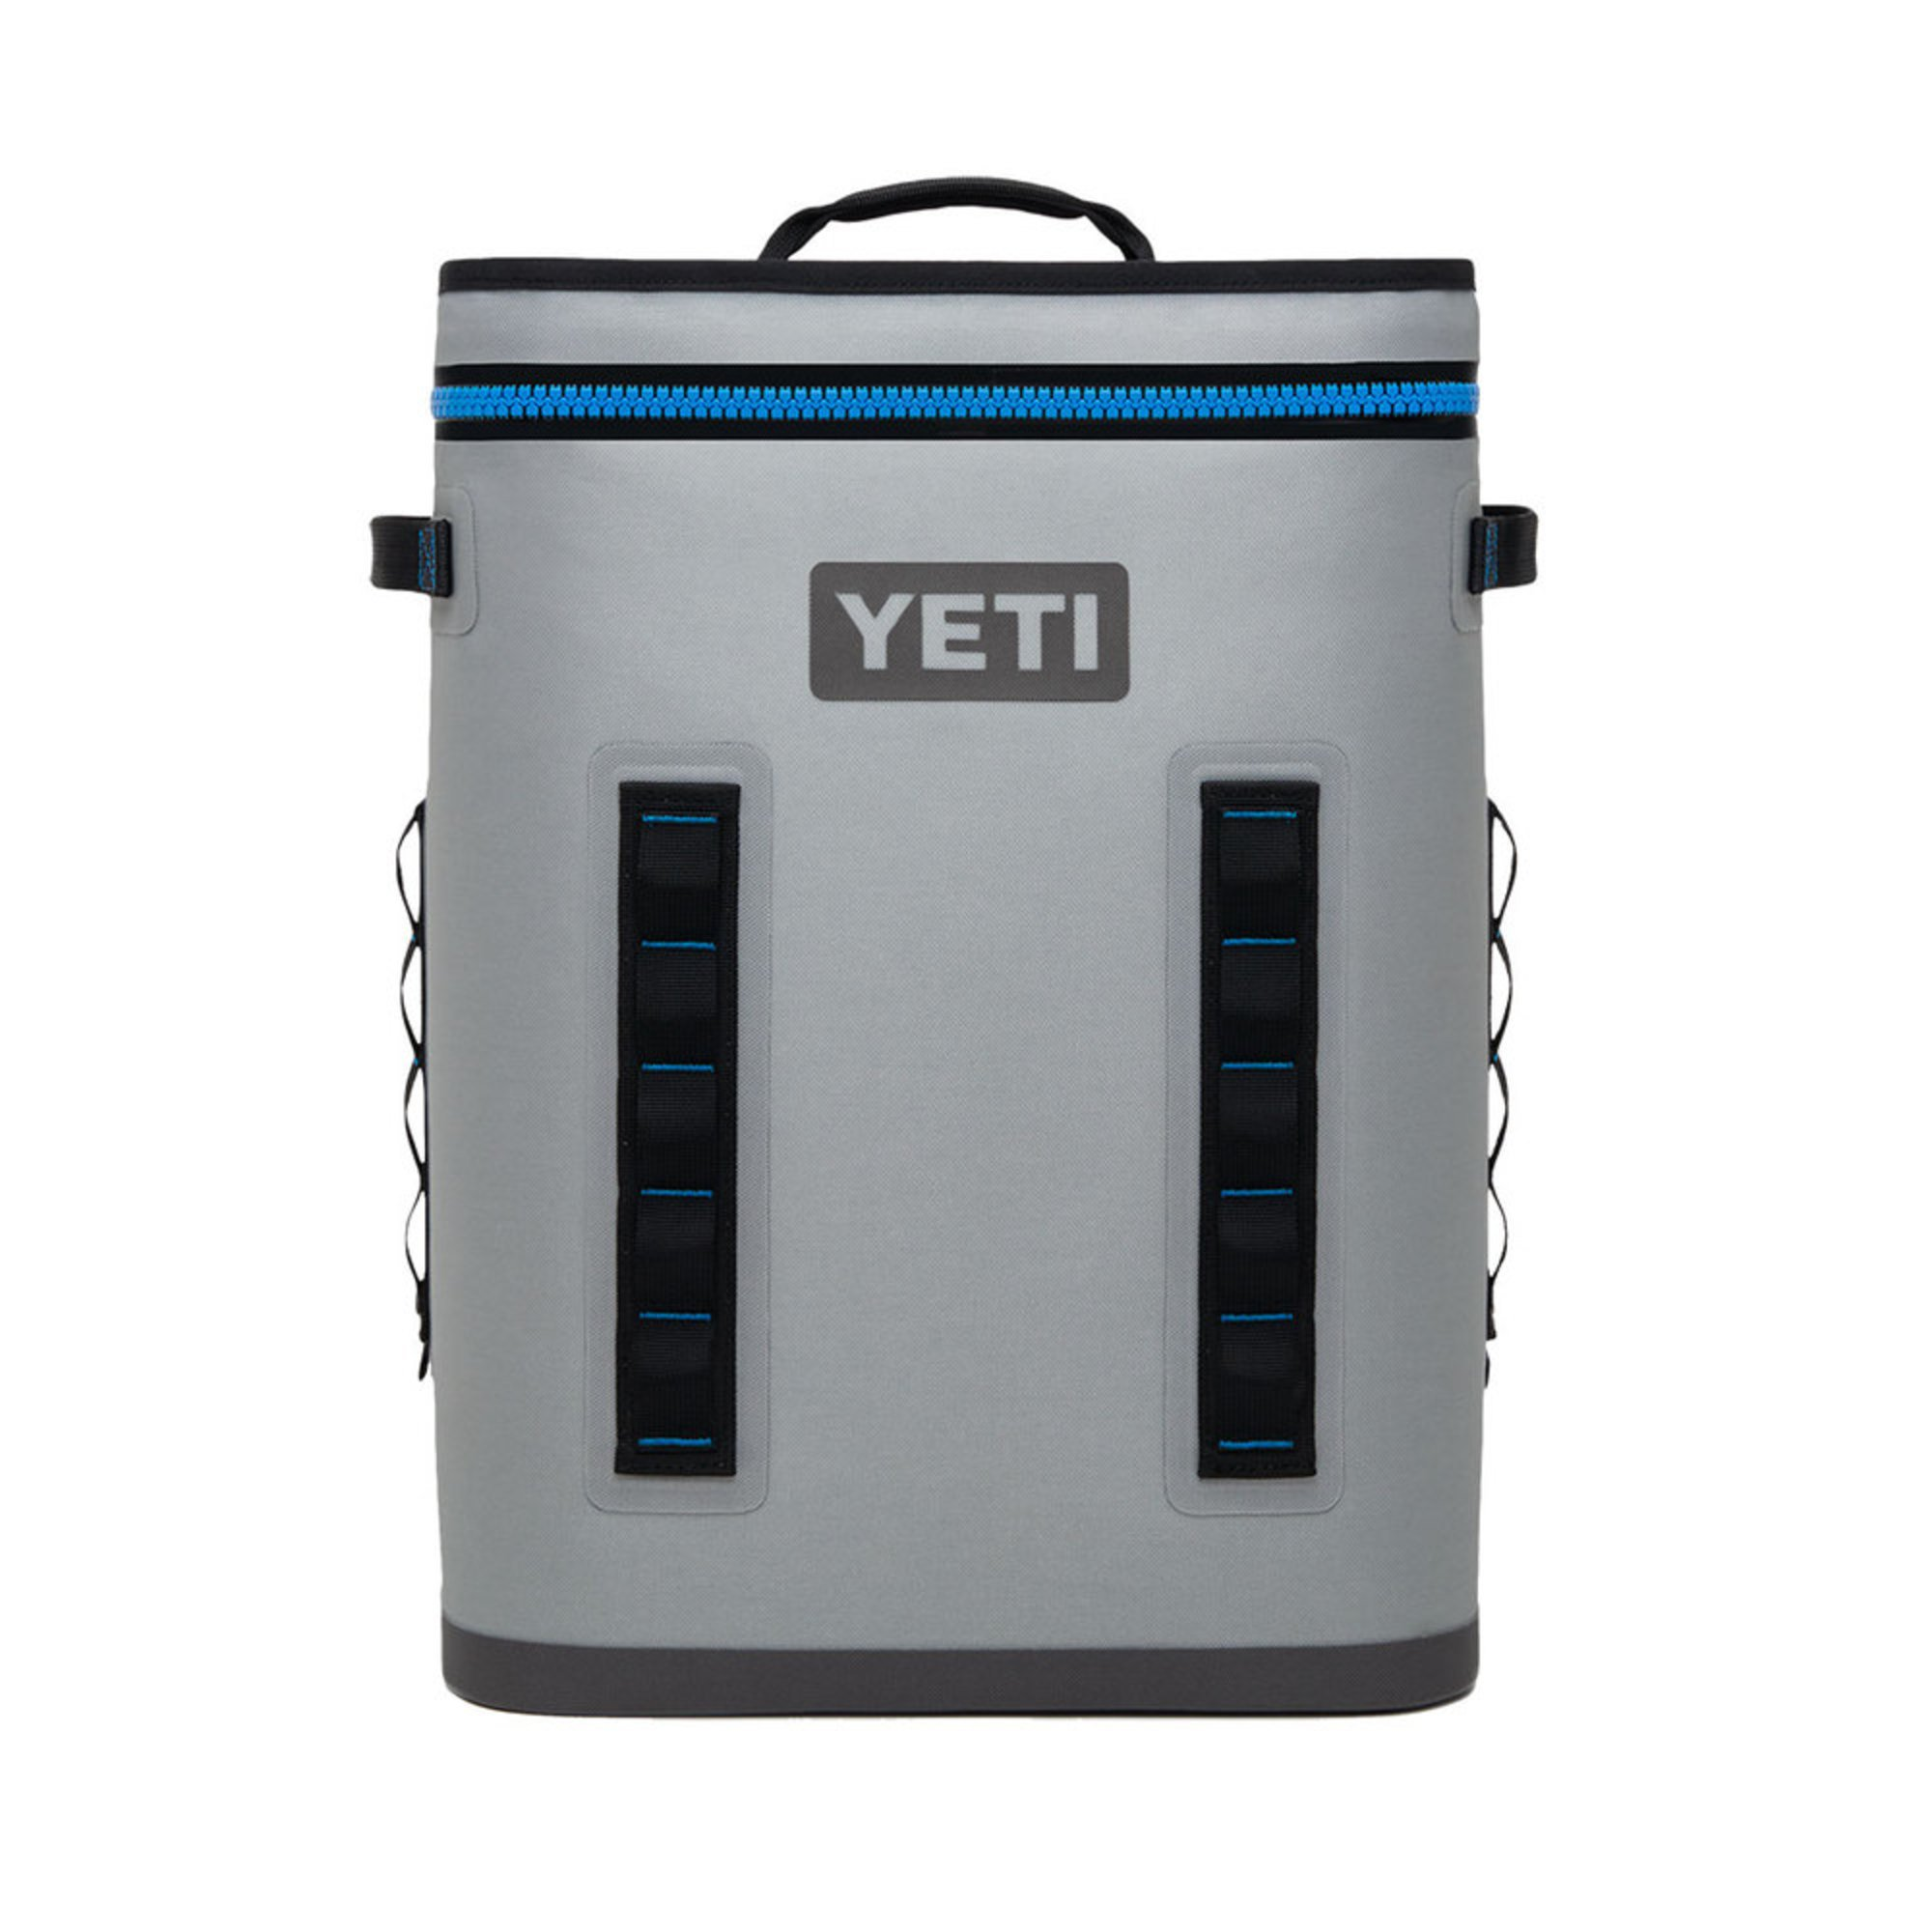 96128174c44 Yeti Hopper Backflip 24 - Fog Gray | Softside Coolers | Fitness ...